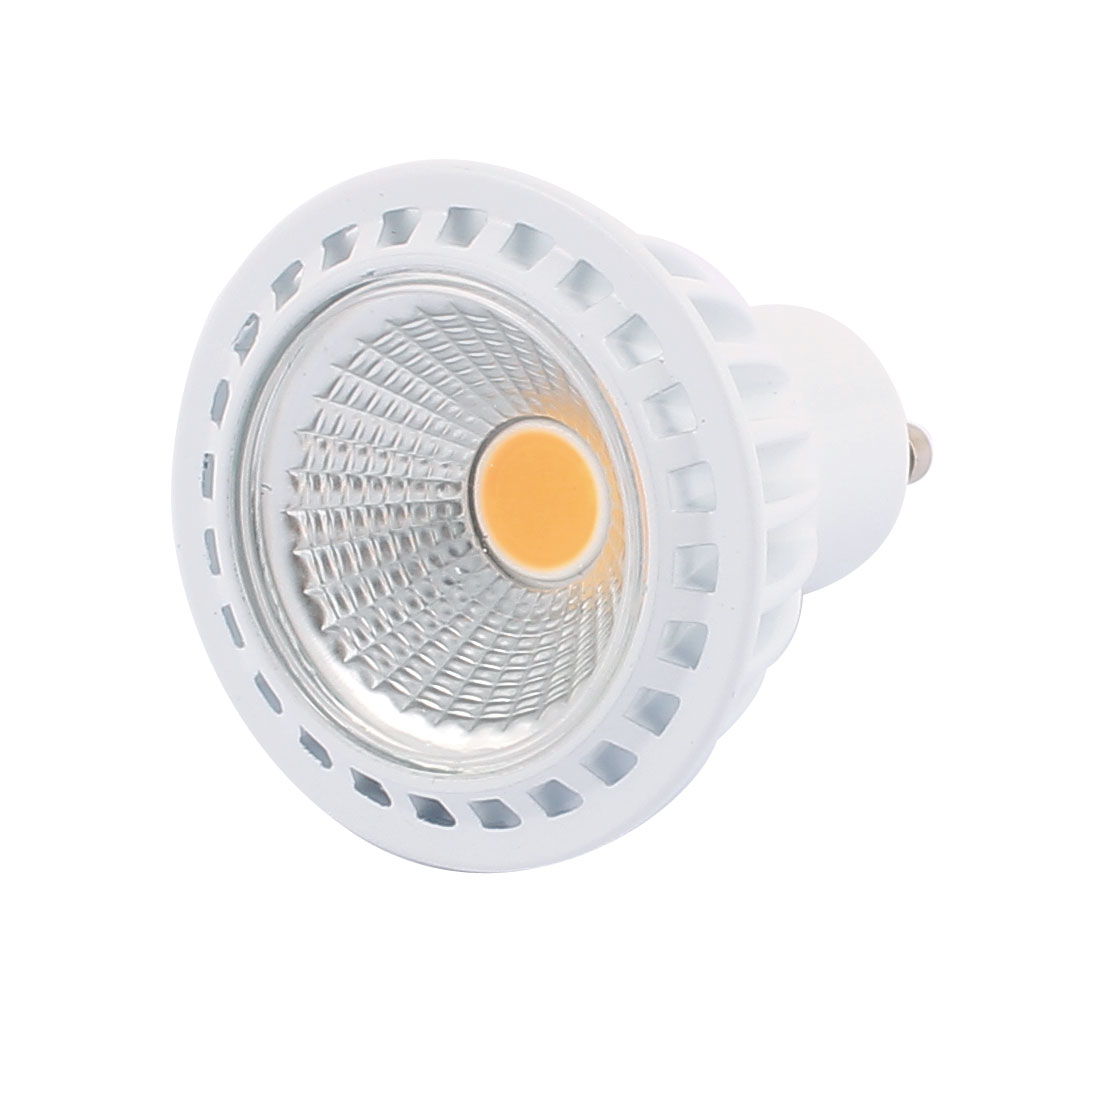 AC85-265V 5W GU10 COB LED Spotlight Lamp Bulb Practical Downlight Warm White